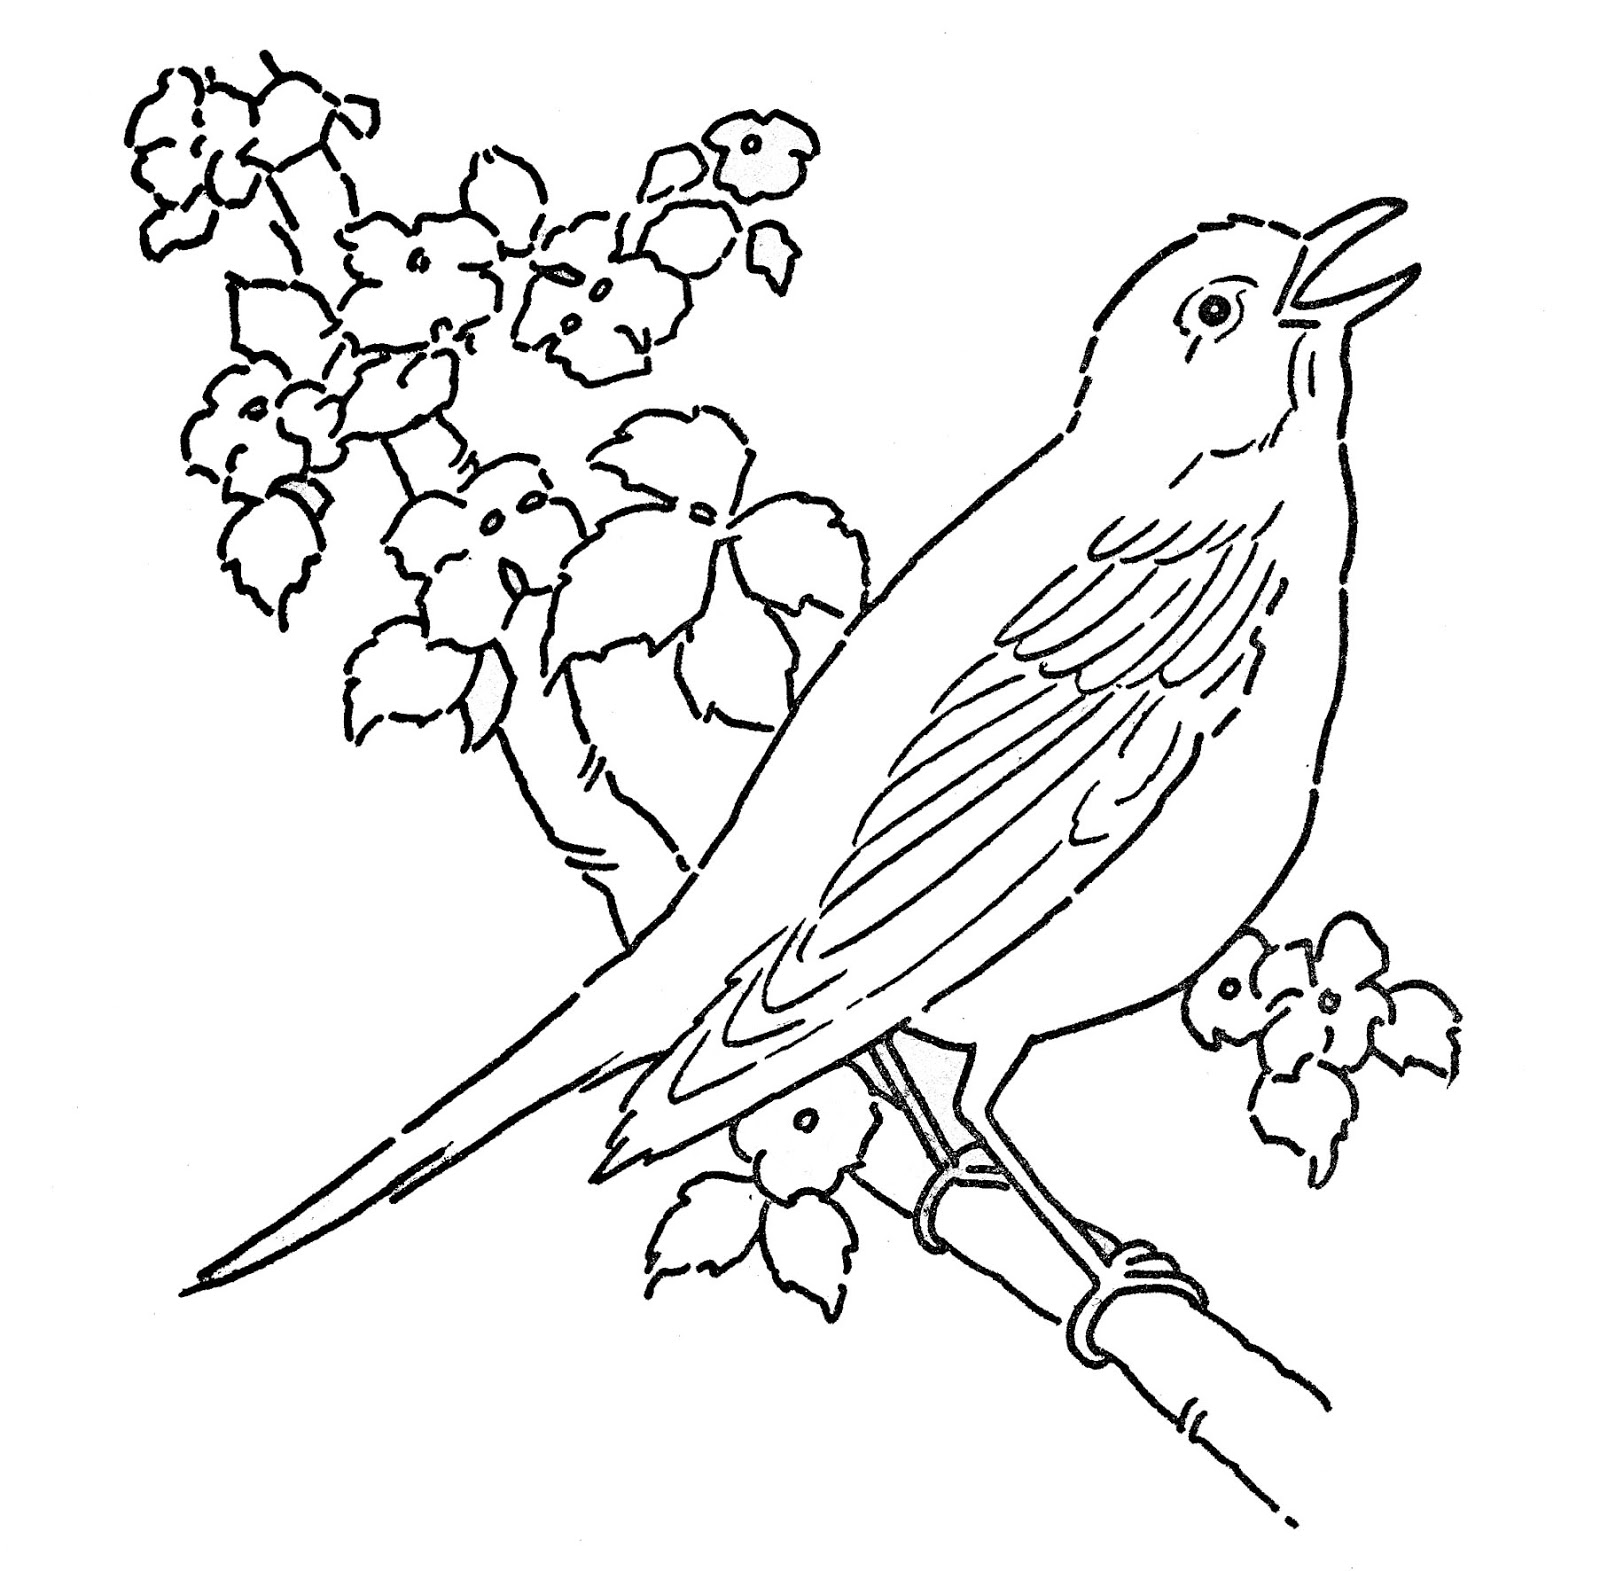 line art coloring page bird with blossoms - Drawing And Colouring Pictures For Kids